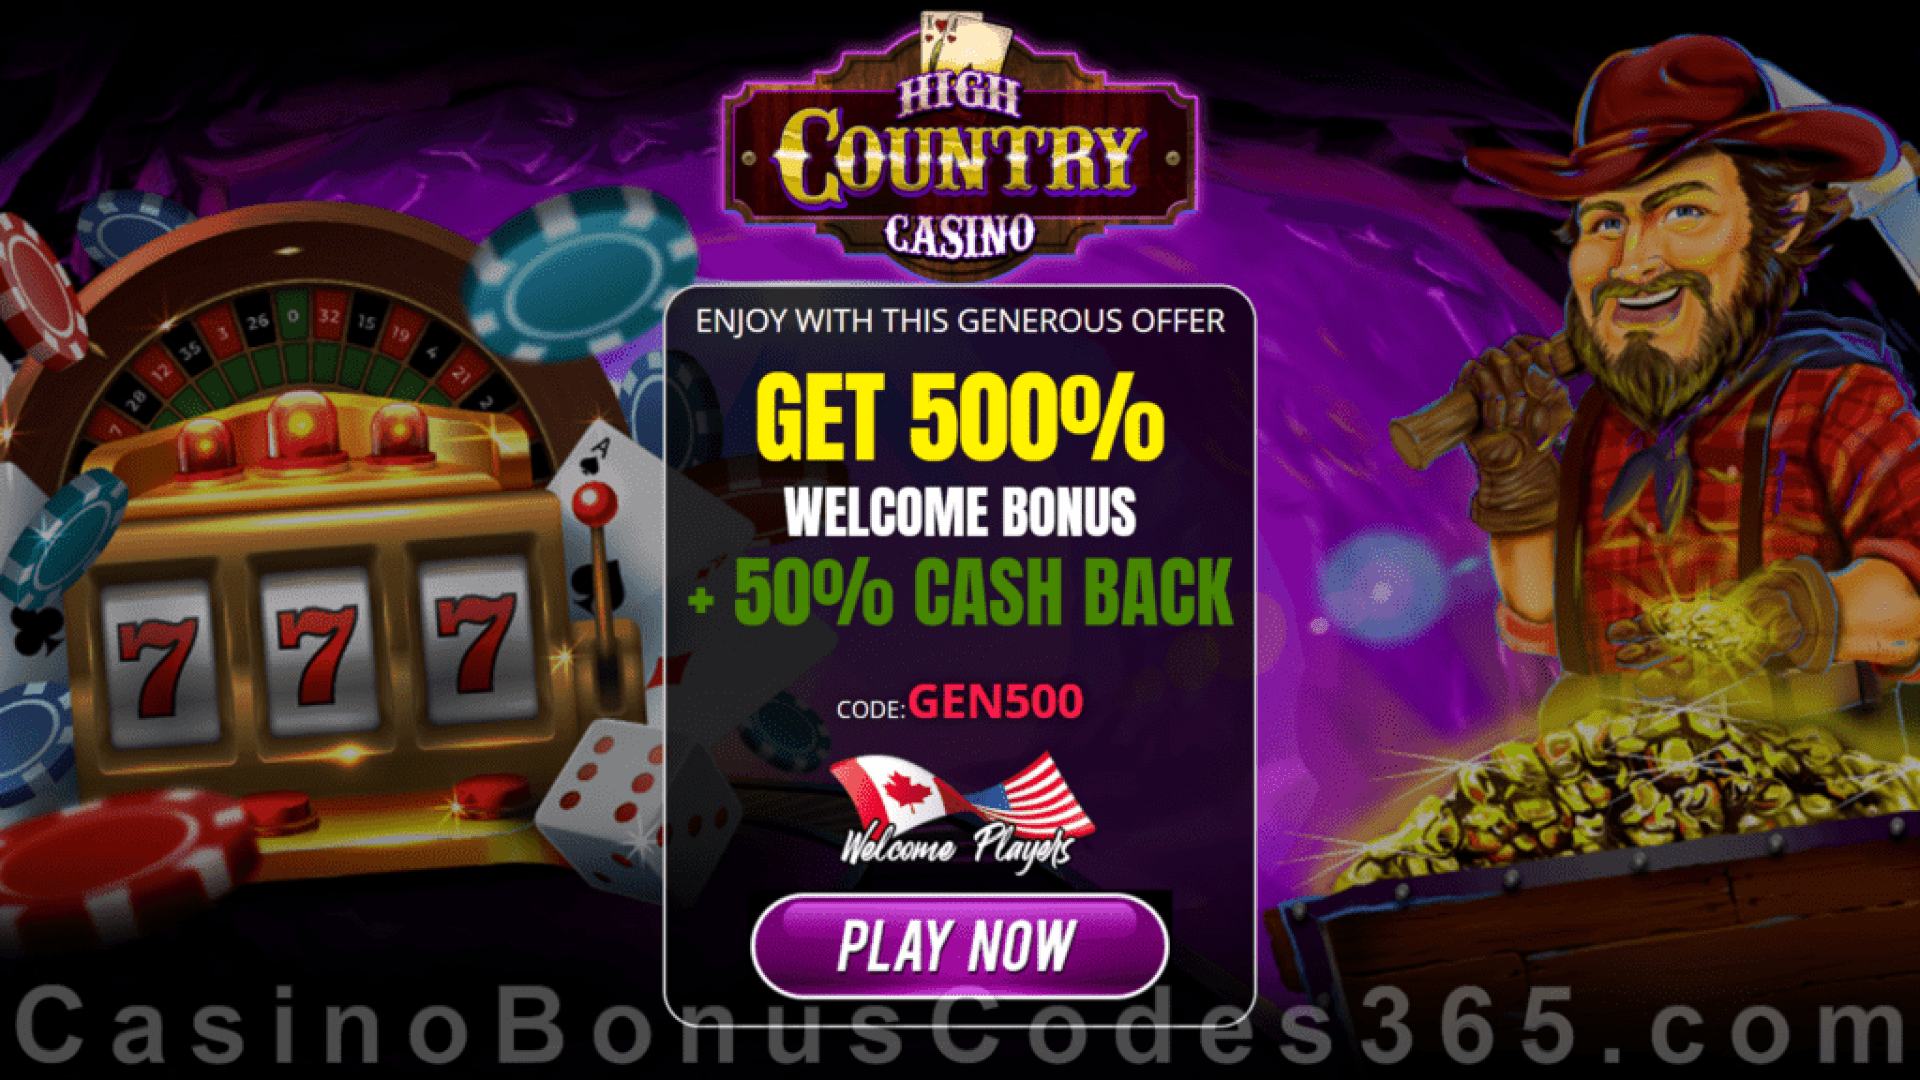 High Country Casino 500% Match Bonus plus 50% Cashback Welcome Package